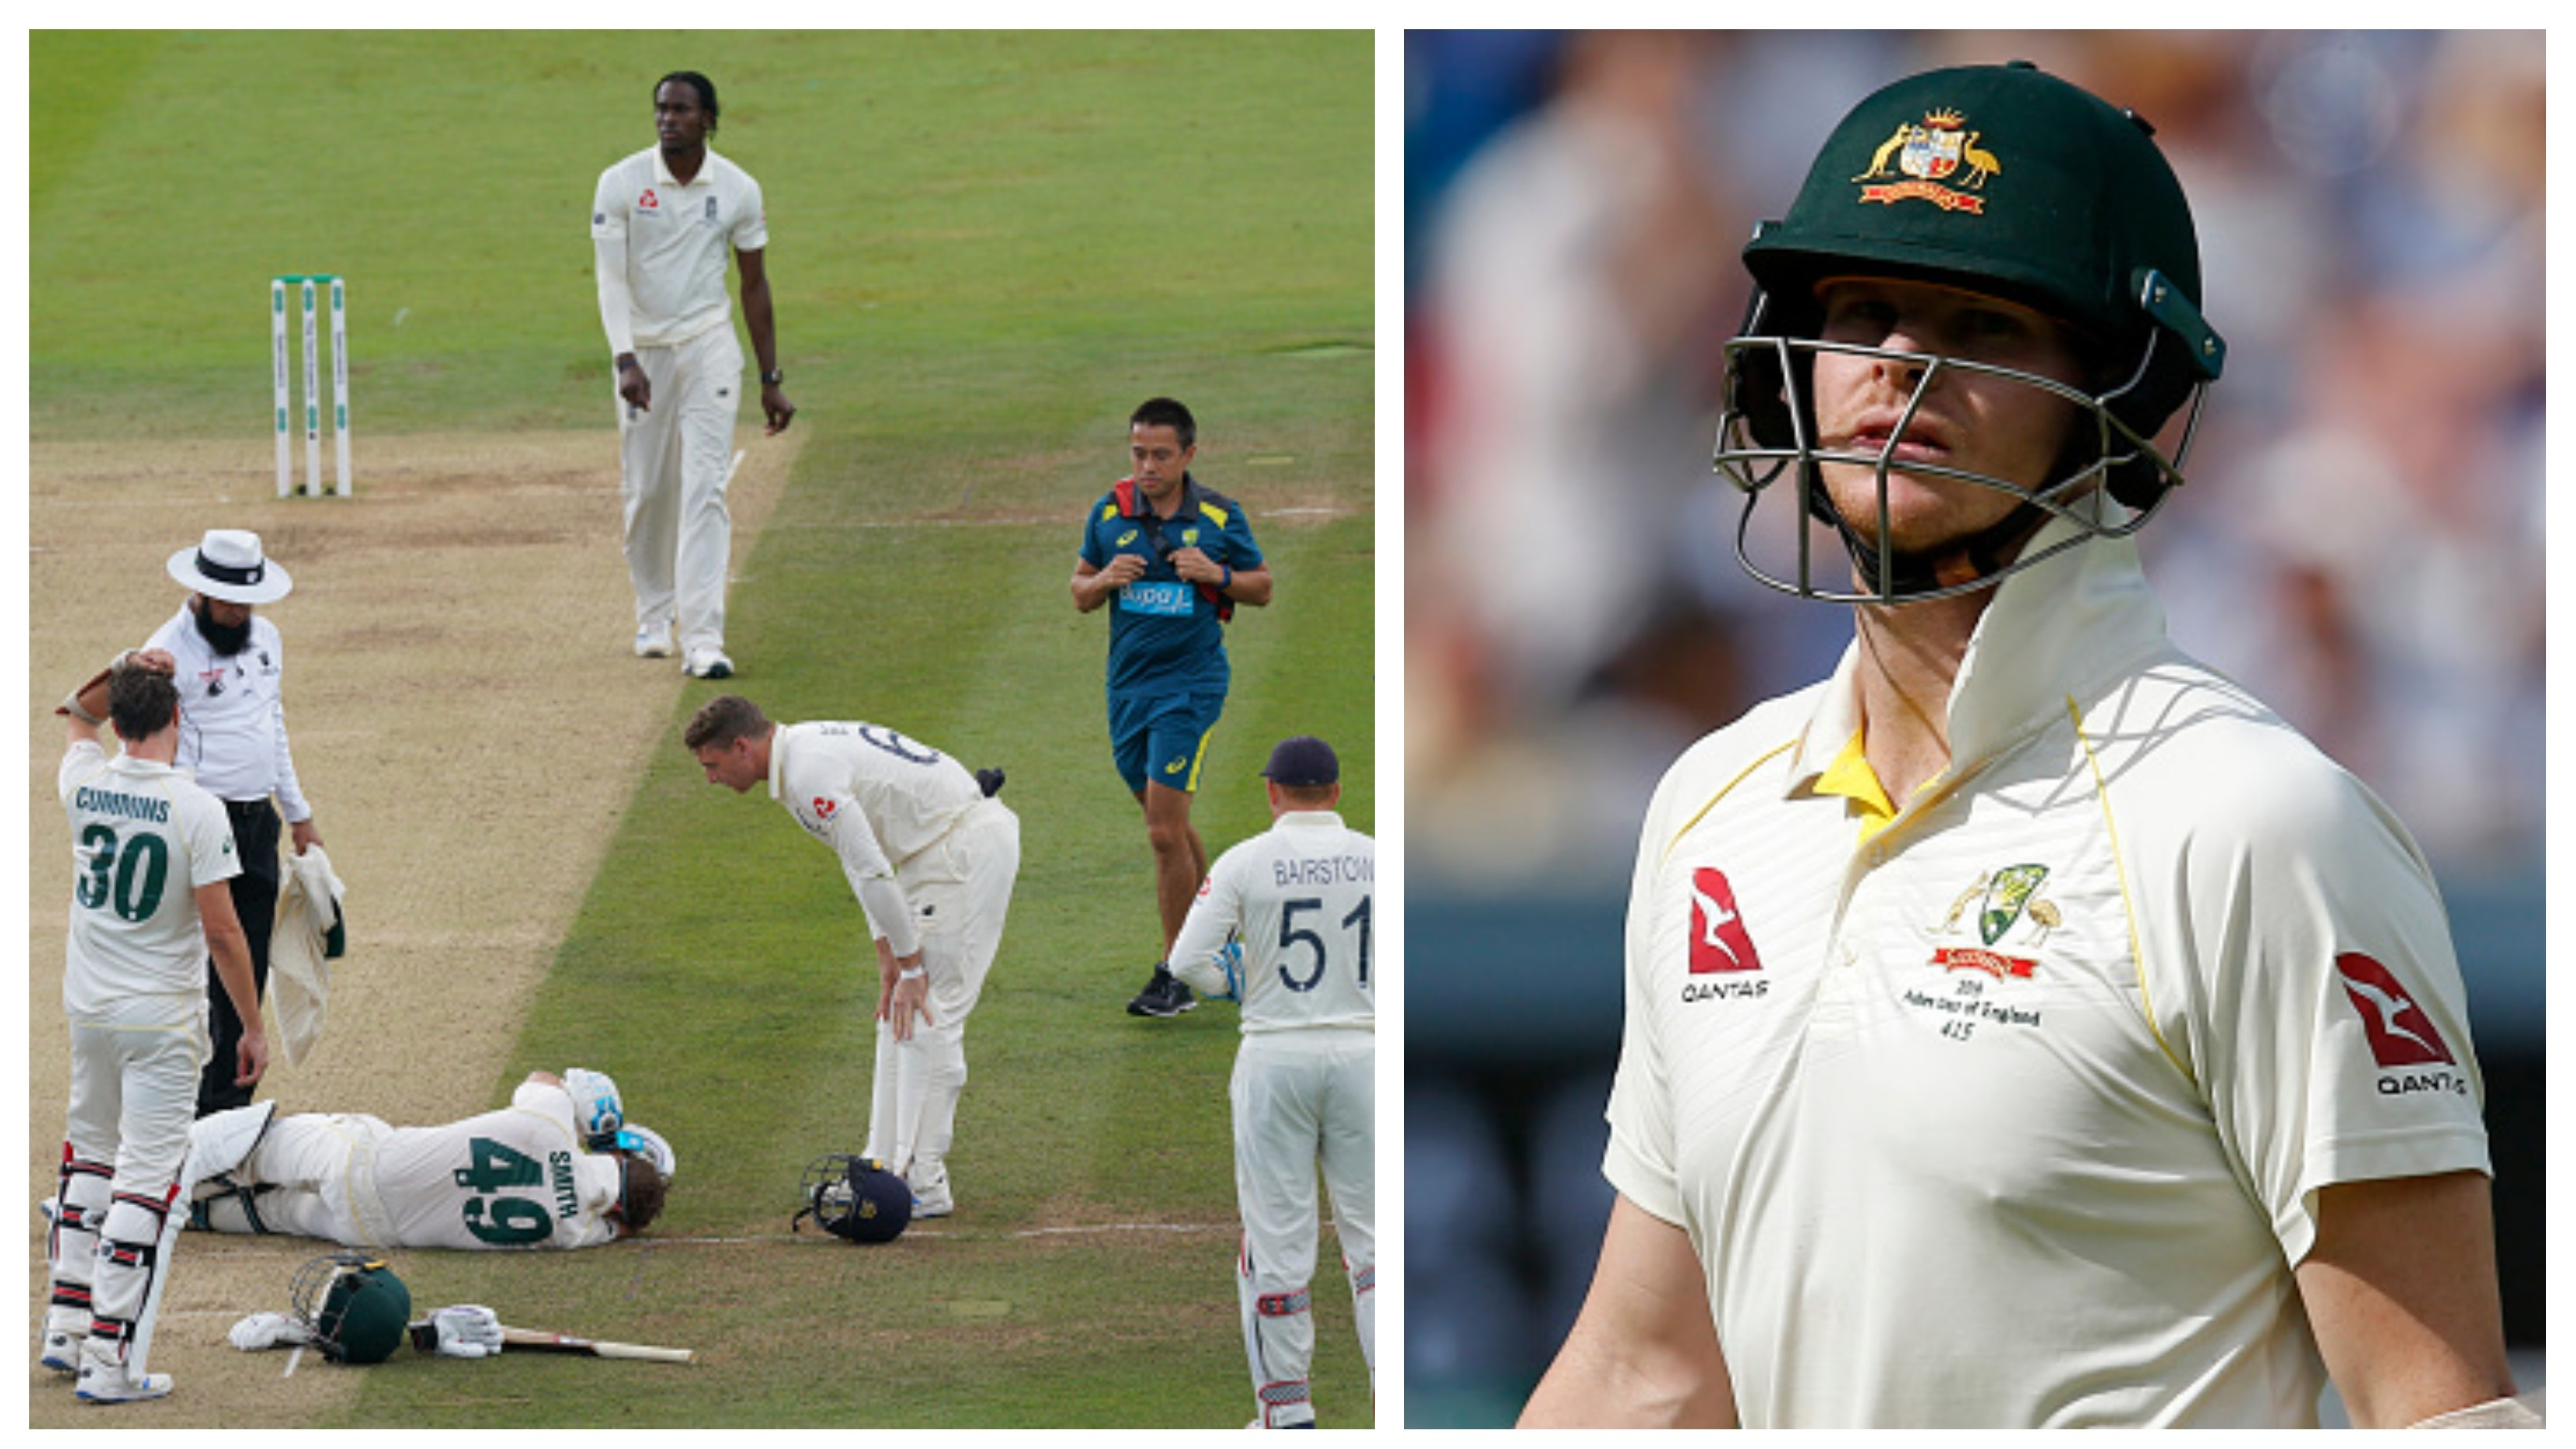 ASHES 2019: Here's why Steve Smith returned to guts it out after blow off Jofra Archer's bouncer